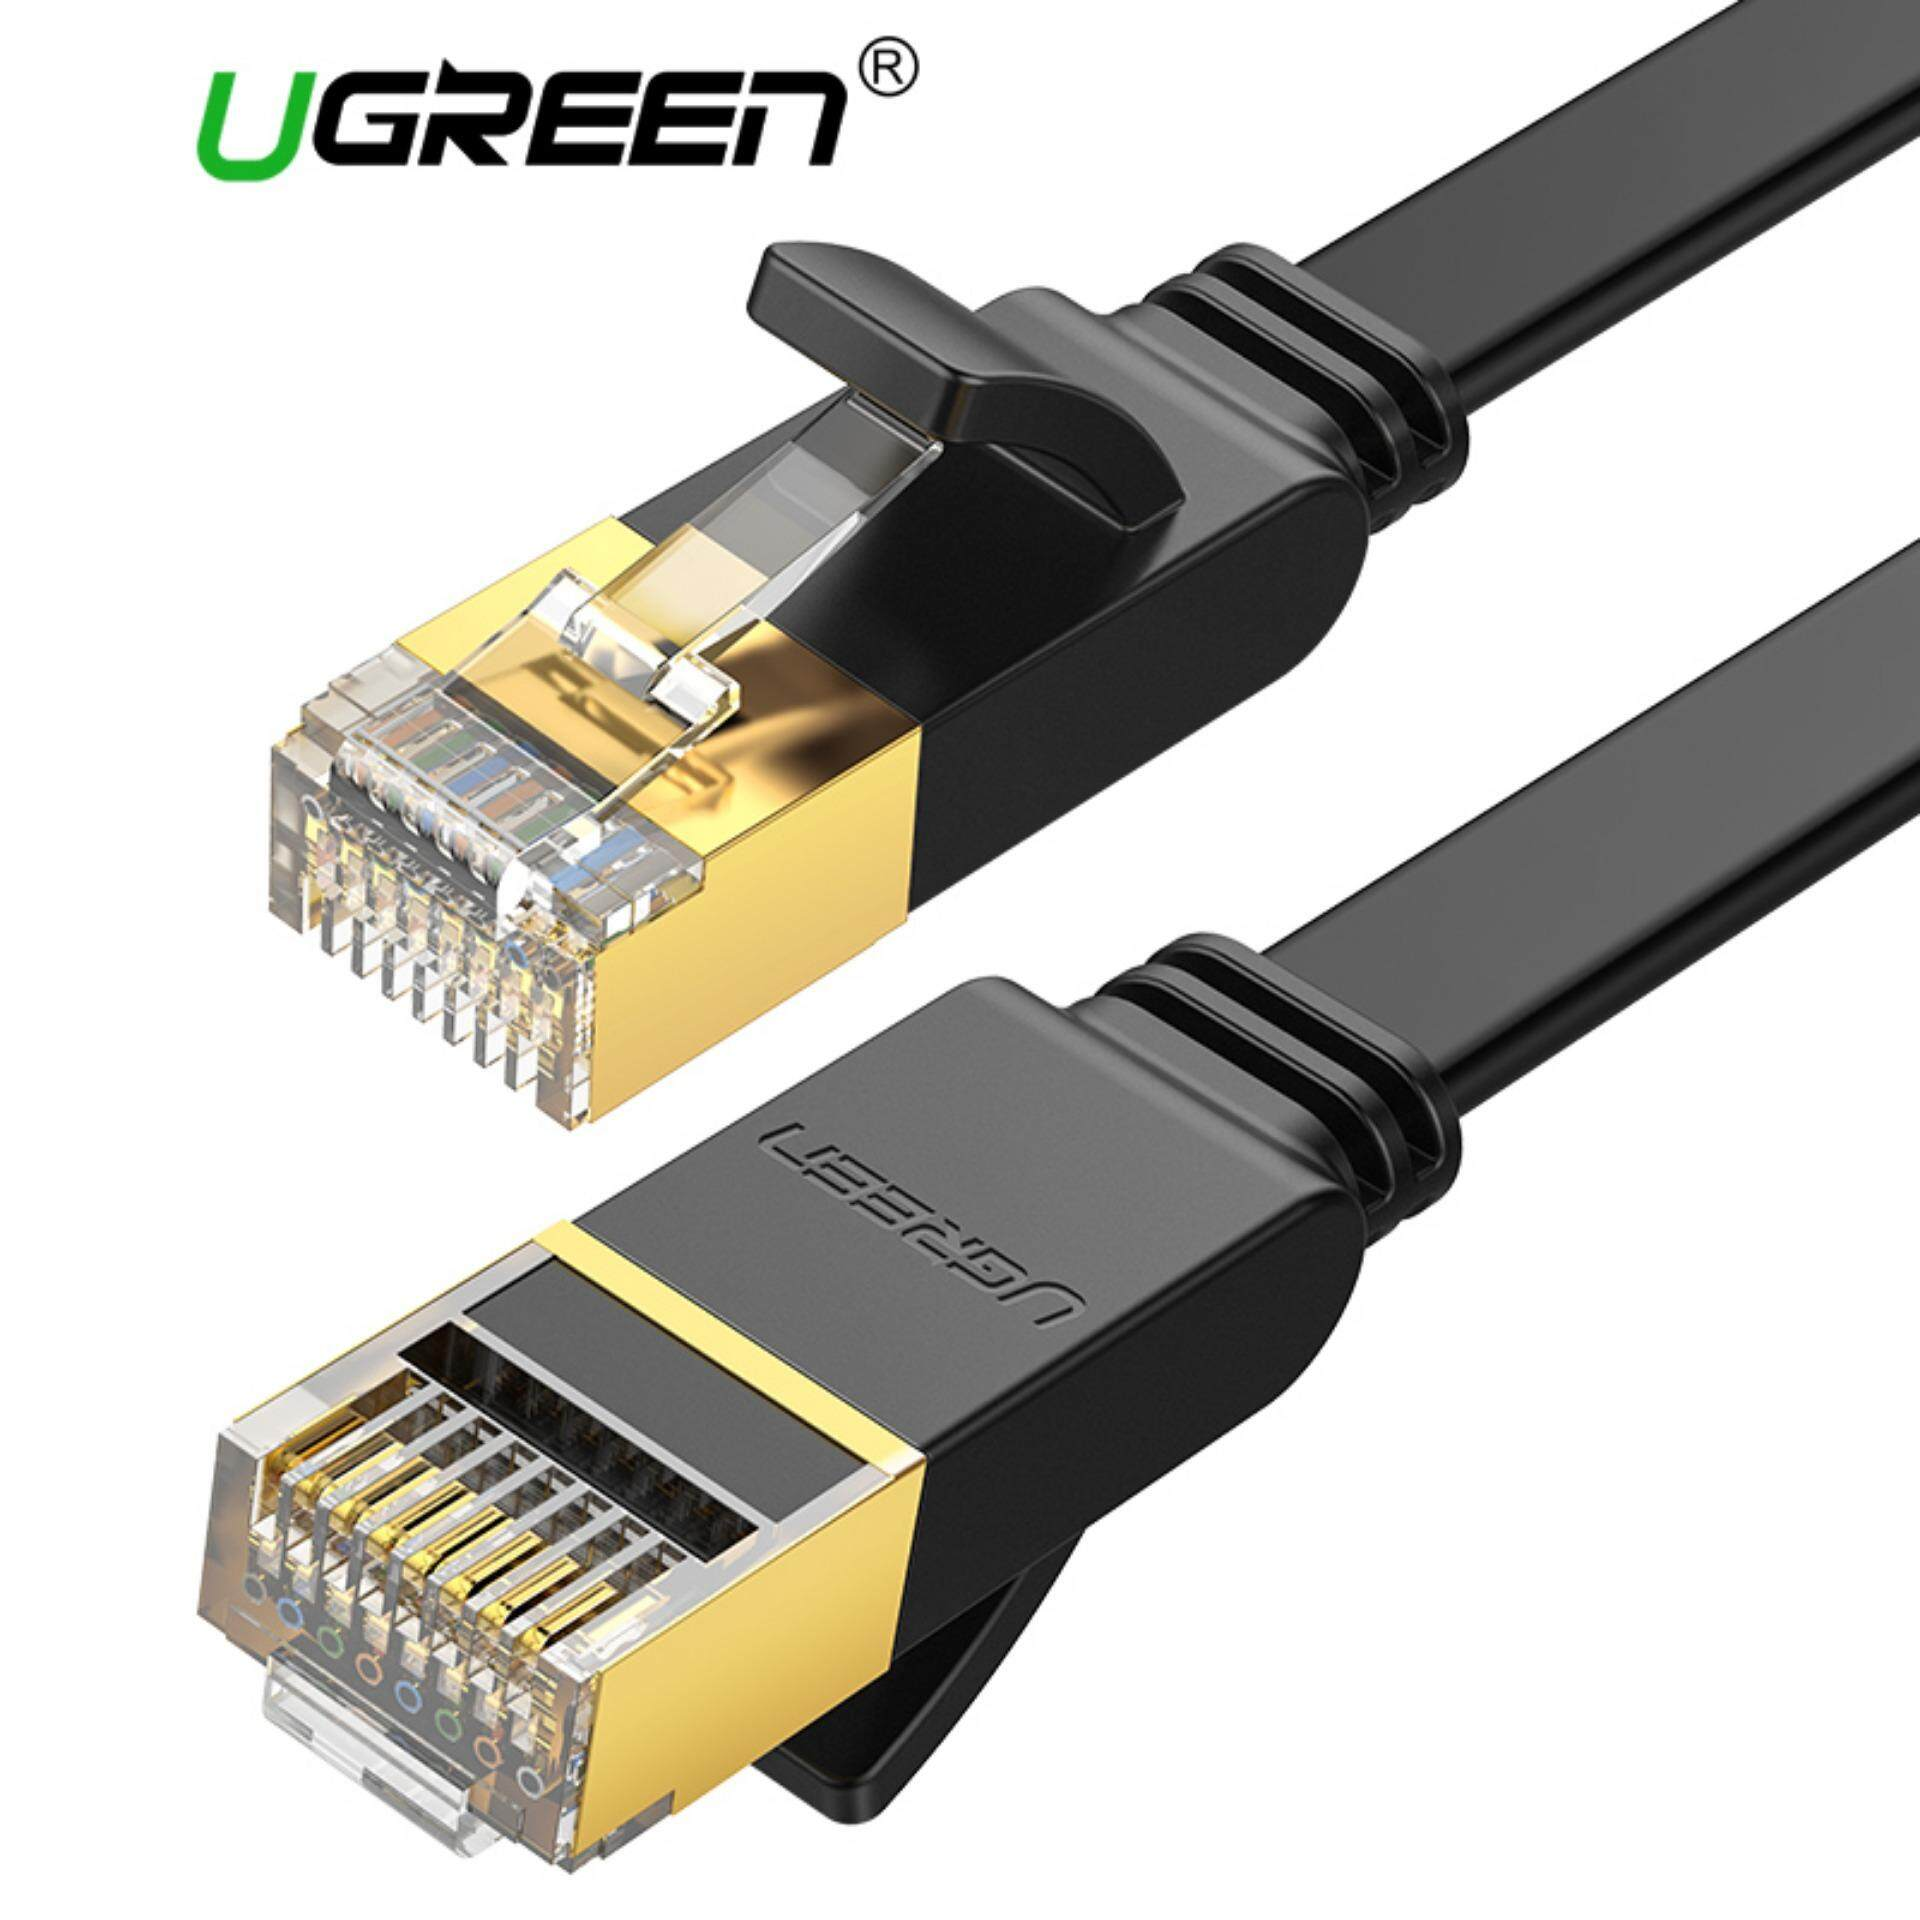 Computer Laptop Ethernet Cables For The Best Prices In Malaysia Electrical Wiring Youtube Together With Sewing Machine 2 Pin Ugreen 5 Meter Flat Cable Cat7 Rj45 Network Patch 10 Gigabit 600mhz Lan